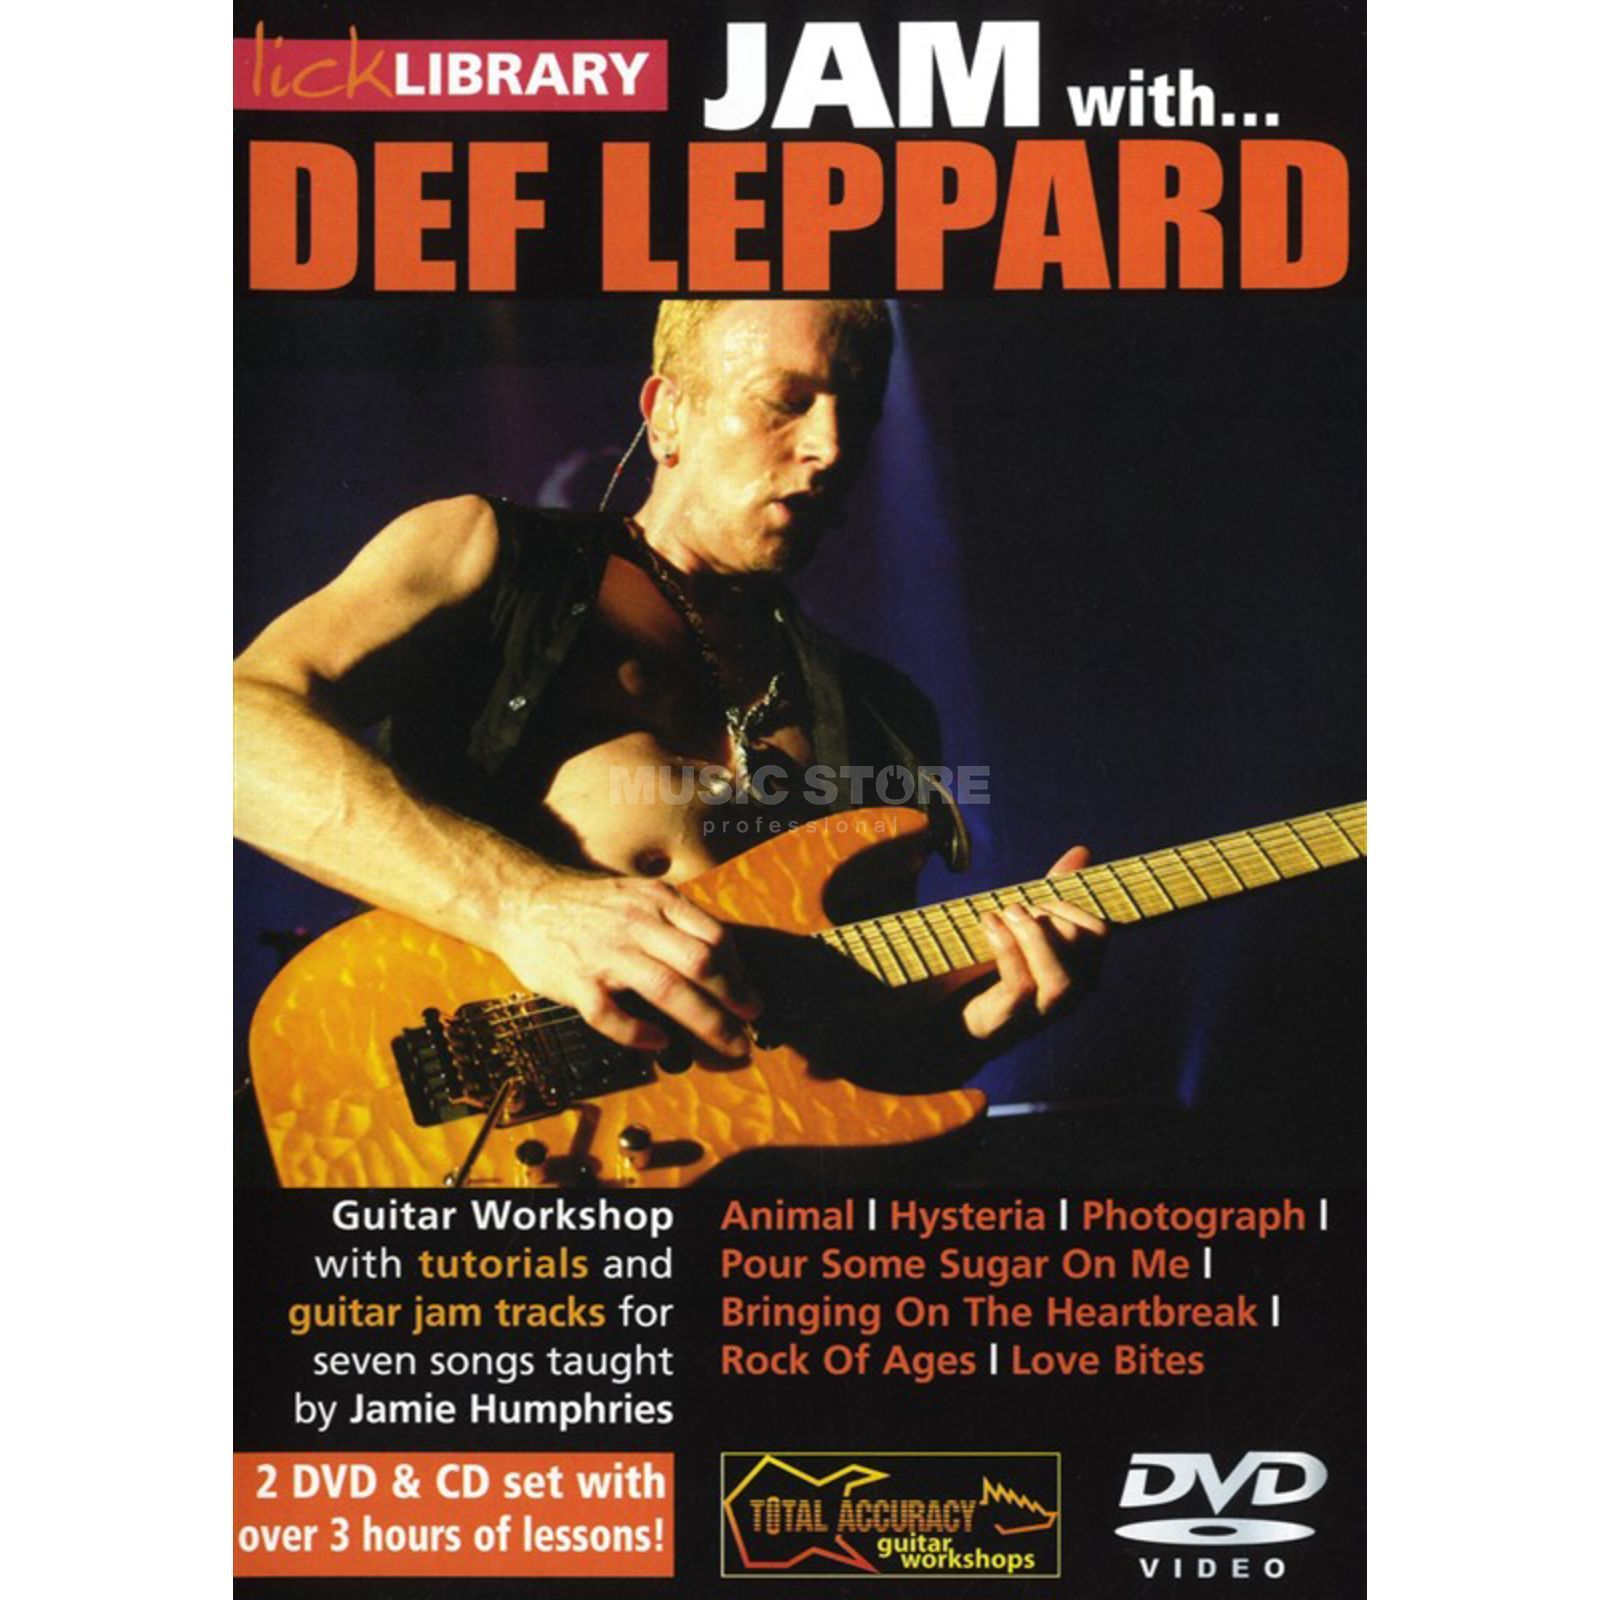 Roadrock International Lick Library: Jam With Def Leppard DVD, CD Produktbild